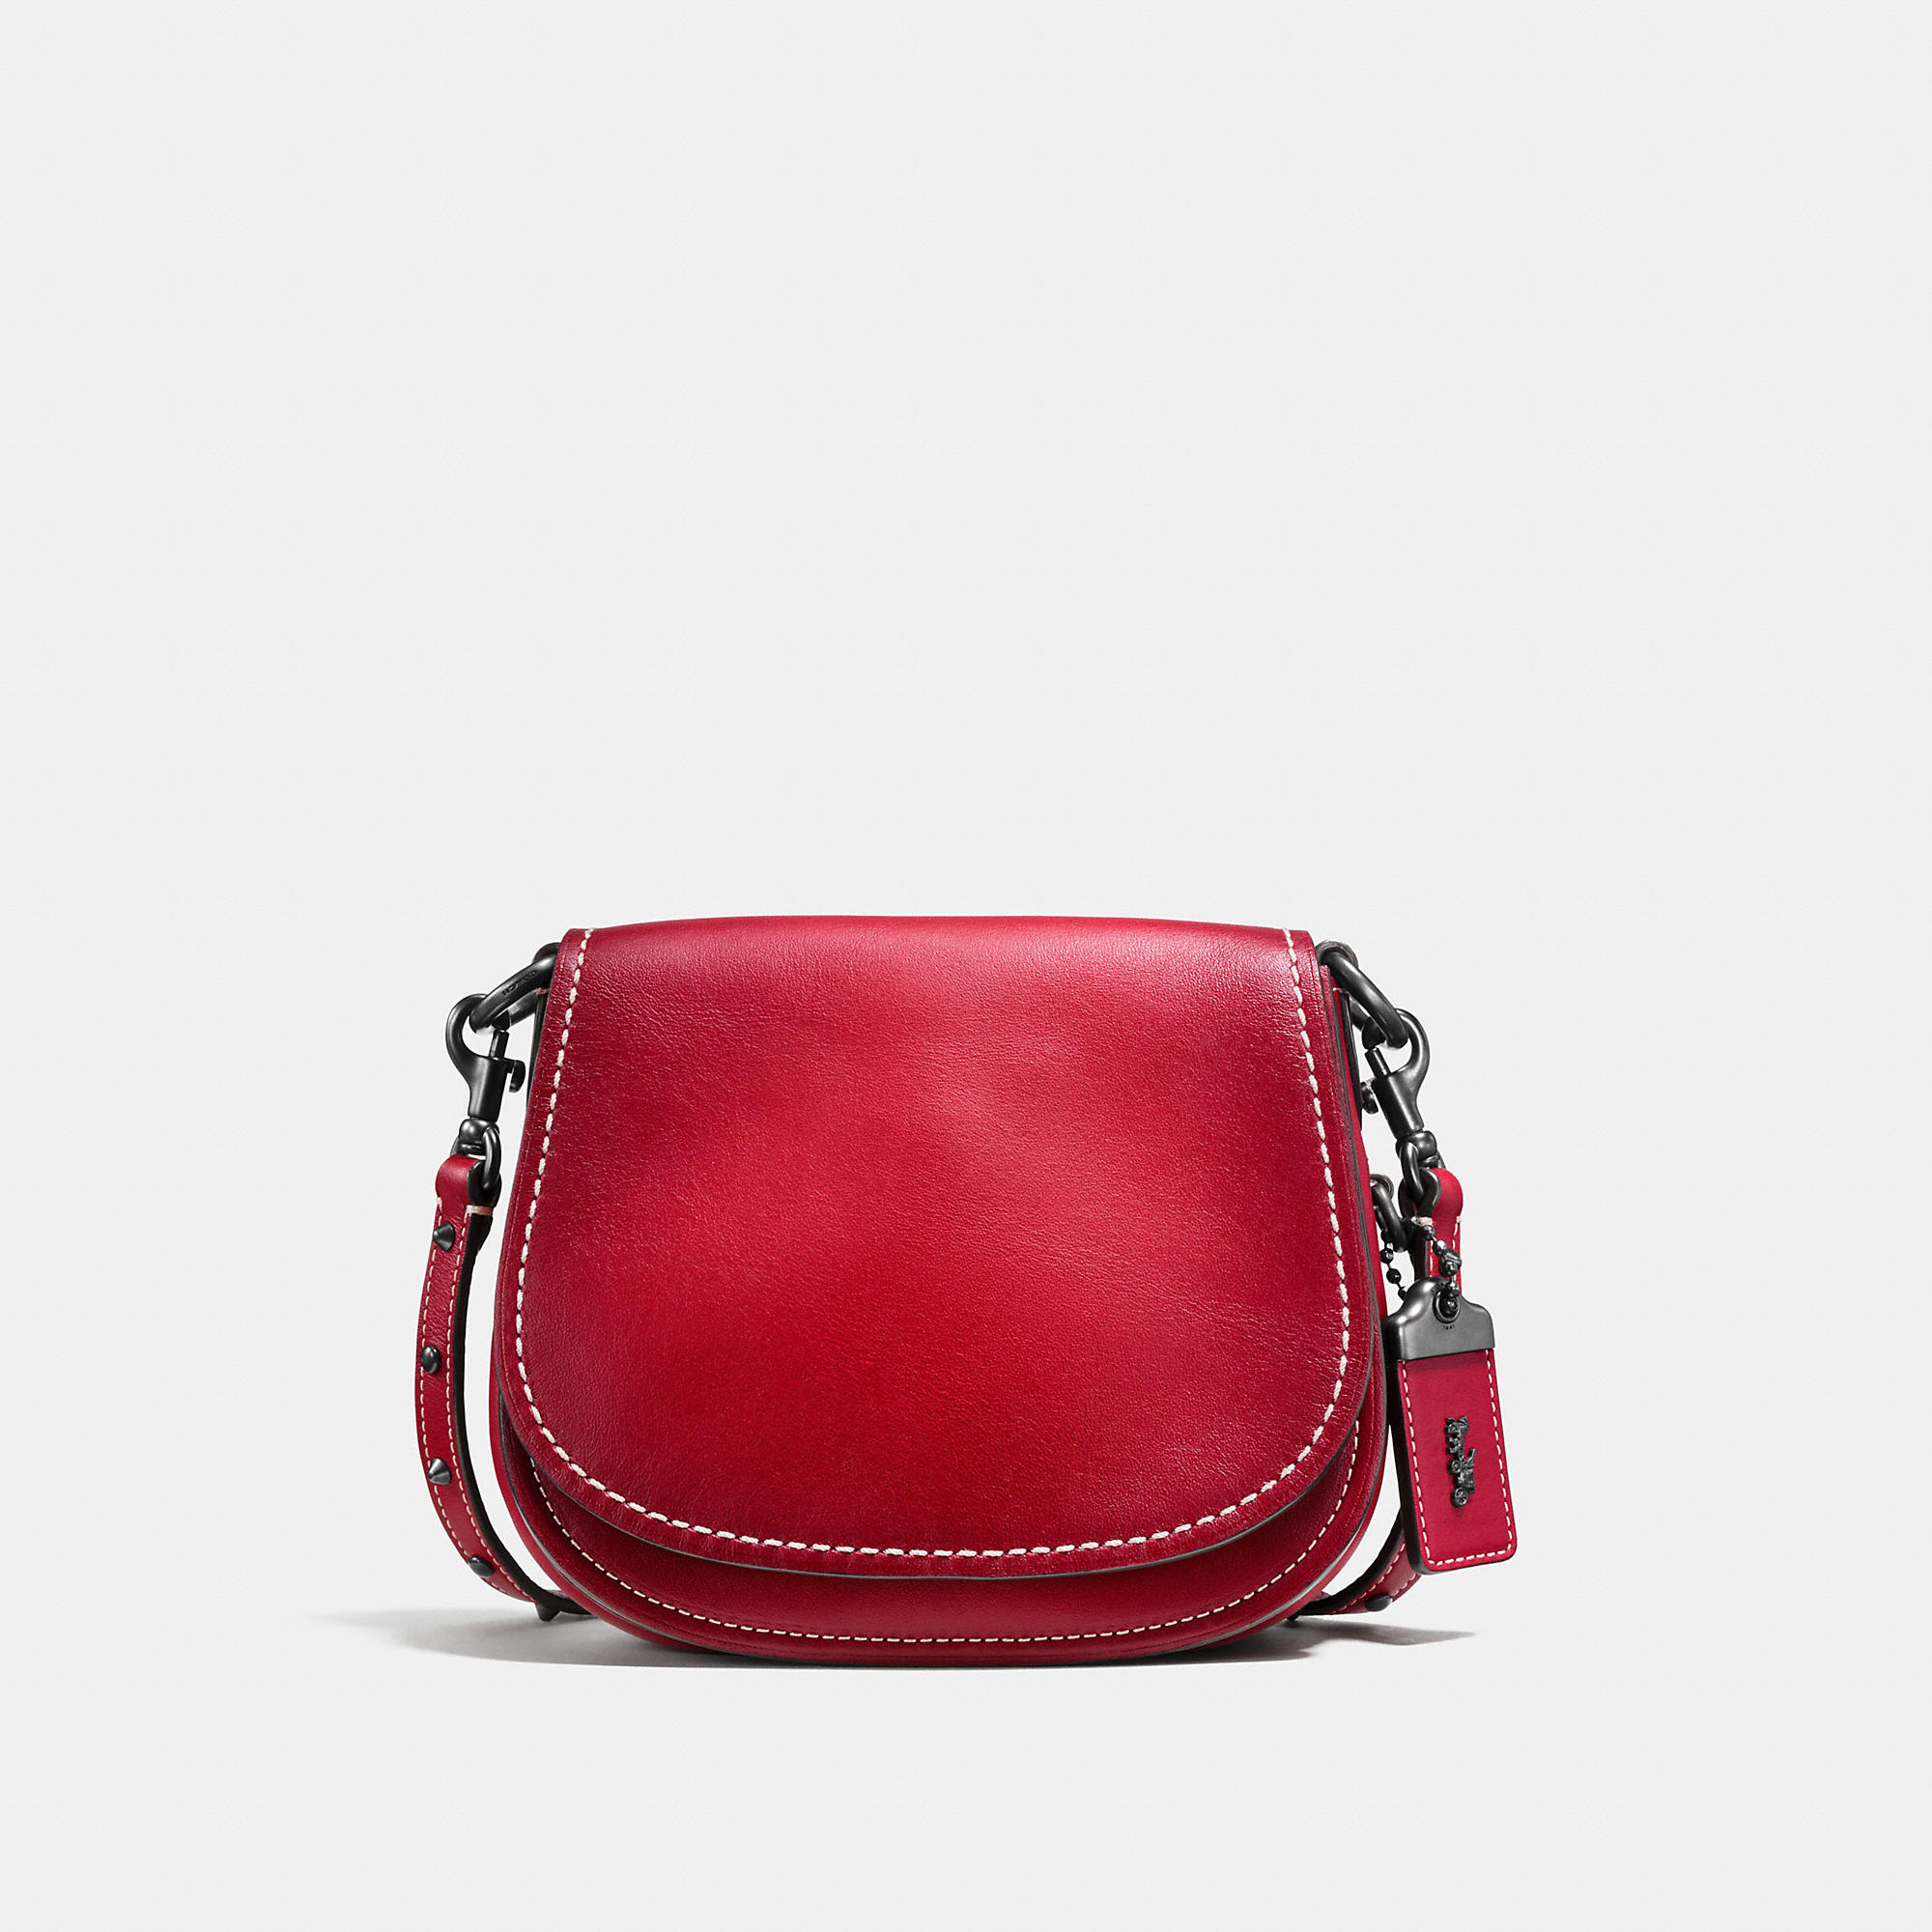 Coach Saddle Bag 17 In Glovetanned Leather